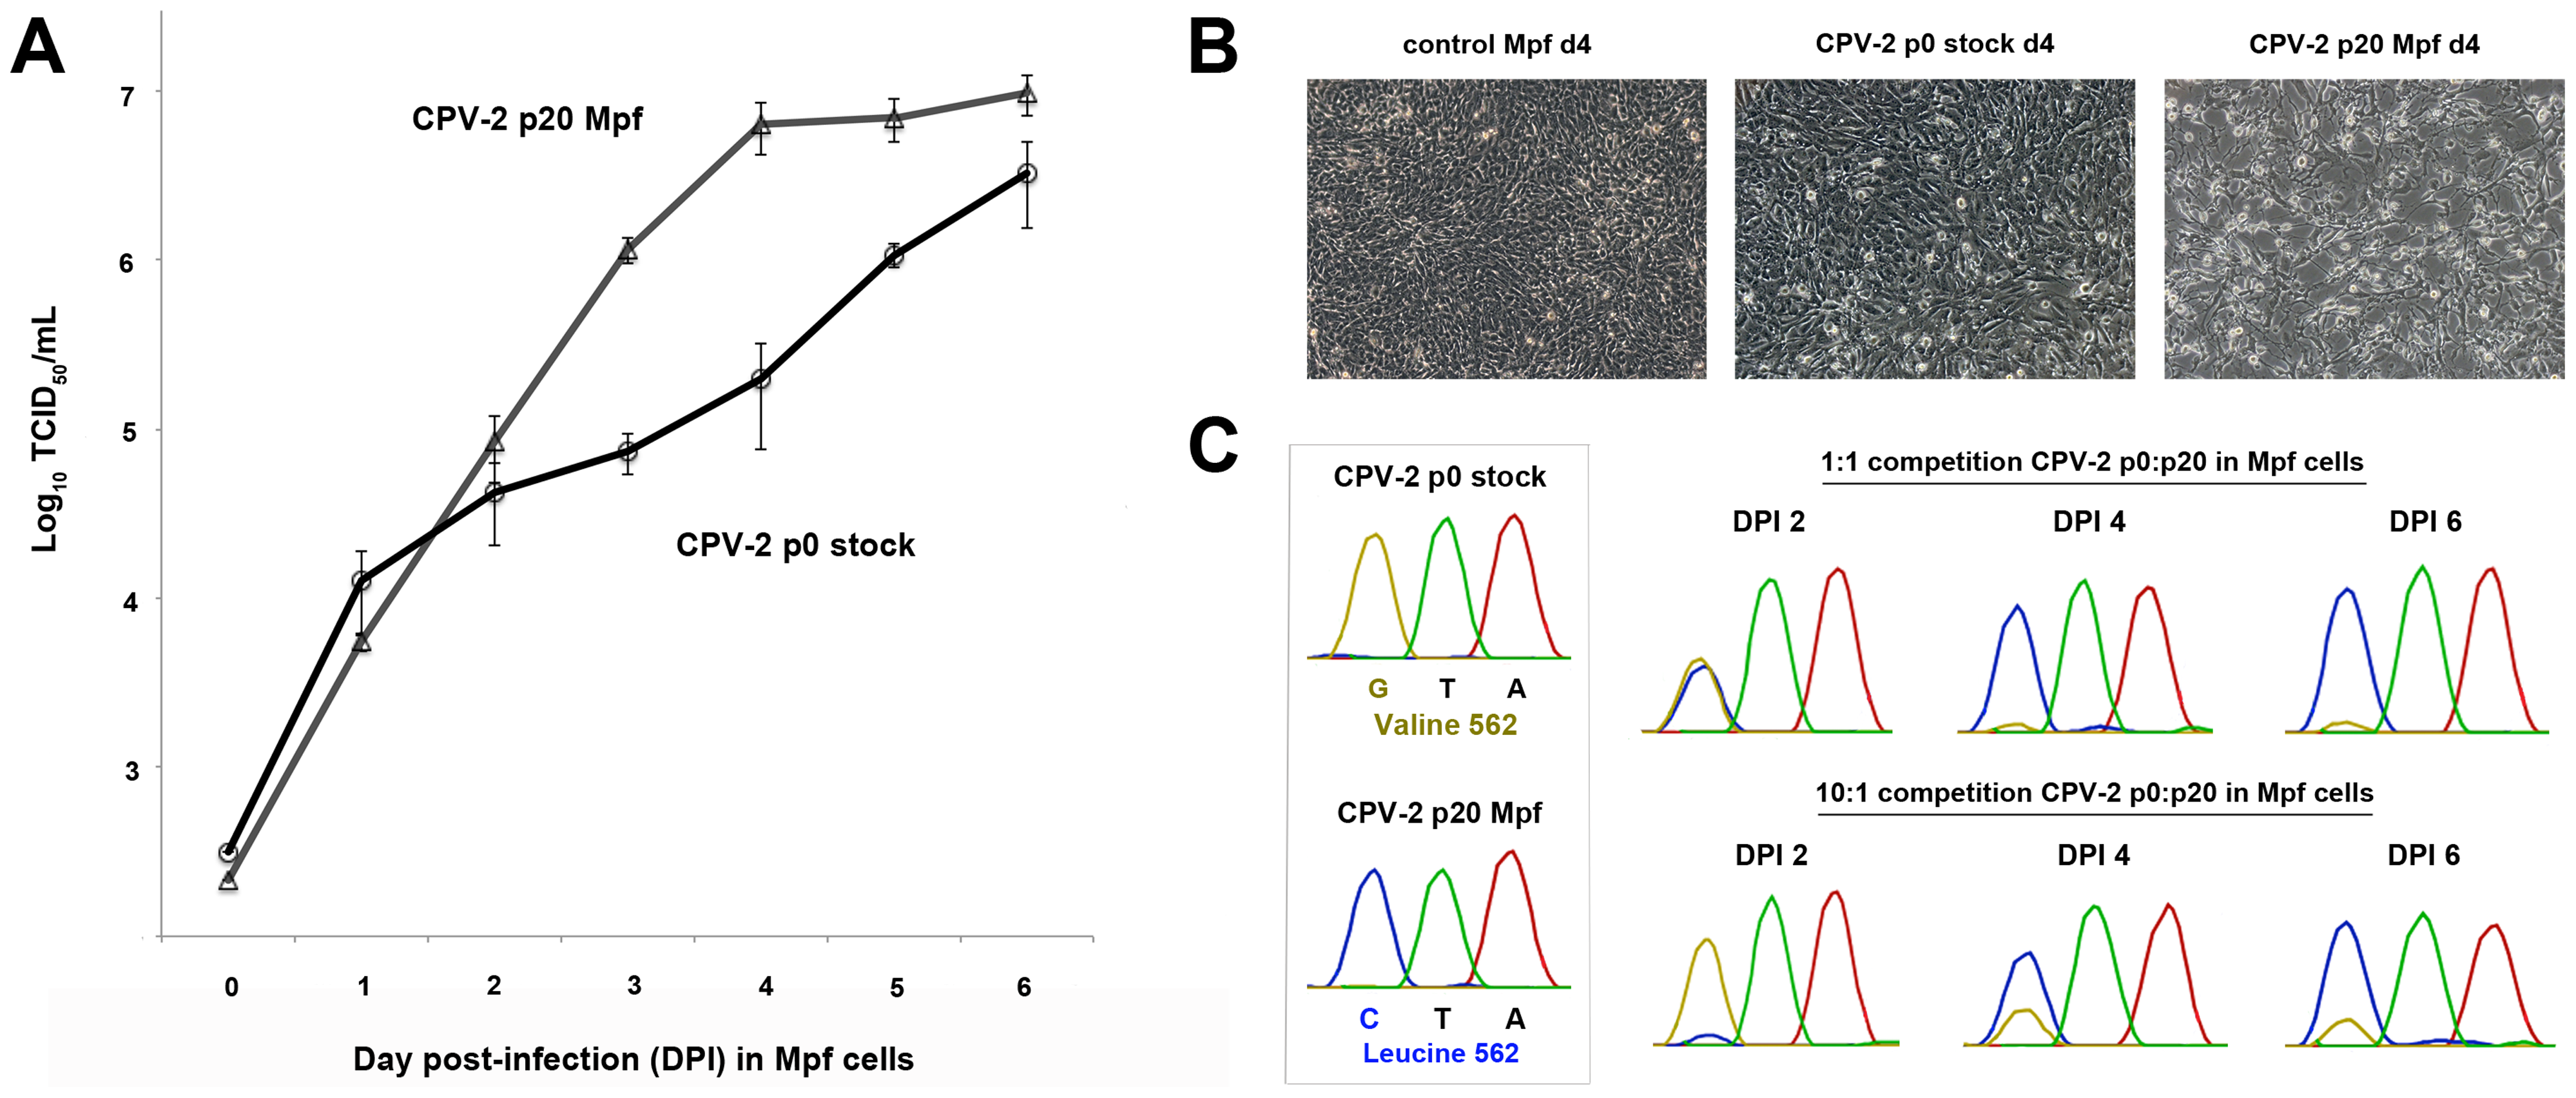 Multi-step single growth curve analysis and competition assays between non-passaged and terminally passaged viruses to detect changes in fitness.